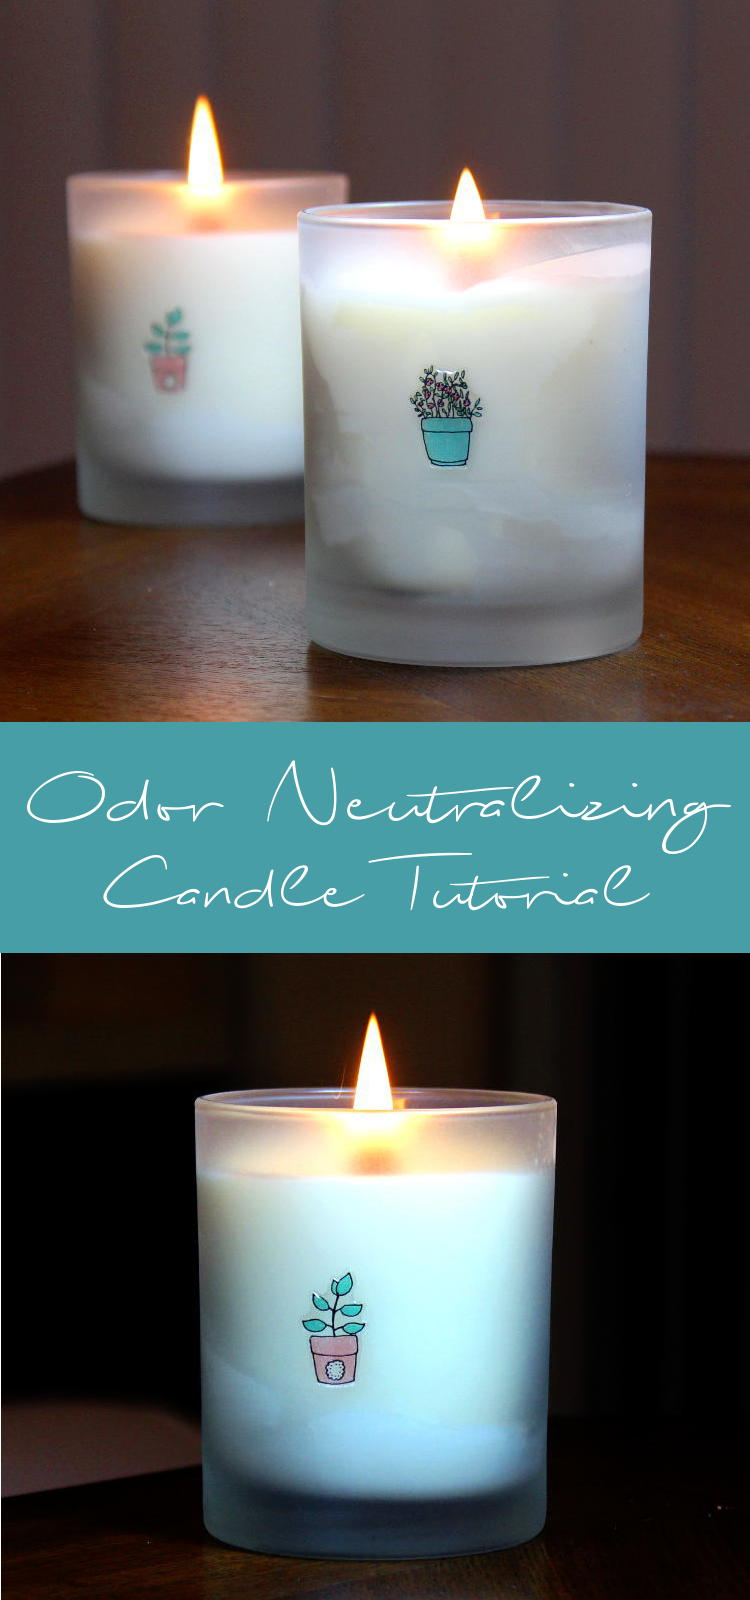 This odor neutralizing candle DIY will teach you how to create your own beautifully scented soy and beeswax candles that neutralize odors in the air while giving off a fresh fragrance as they burn. These odor neutralizing candles are relatively easy to make and they really do work! I tested mine in the kitchen after my boyfriend made curry.